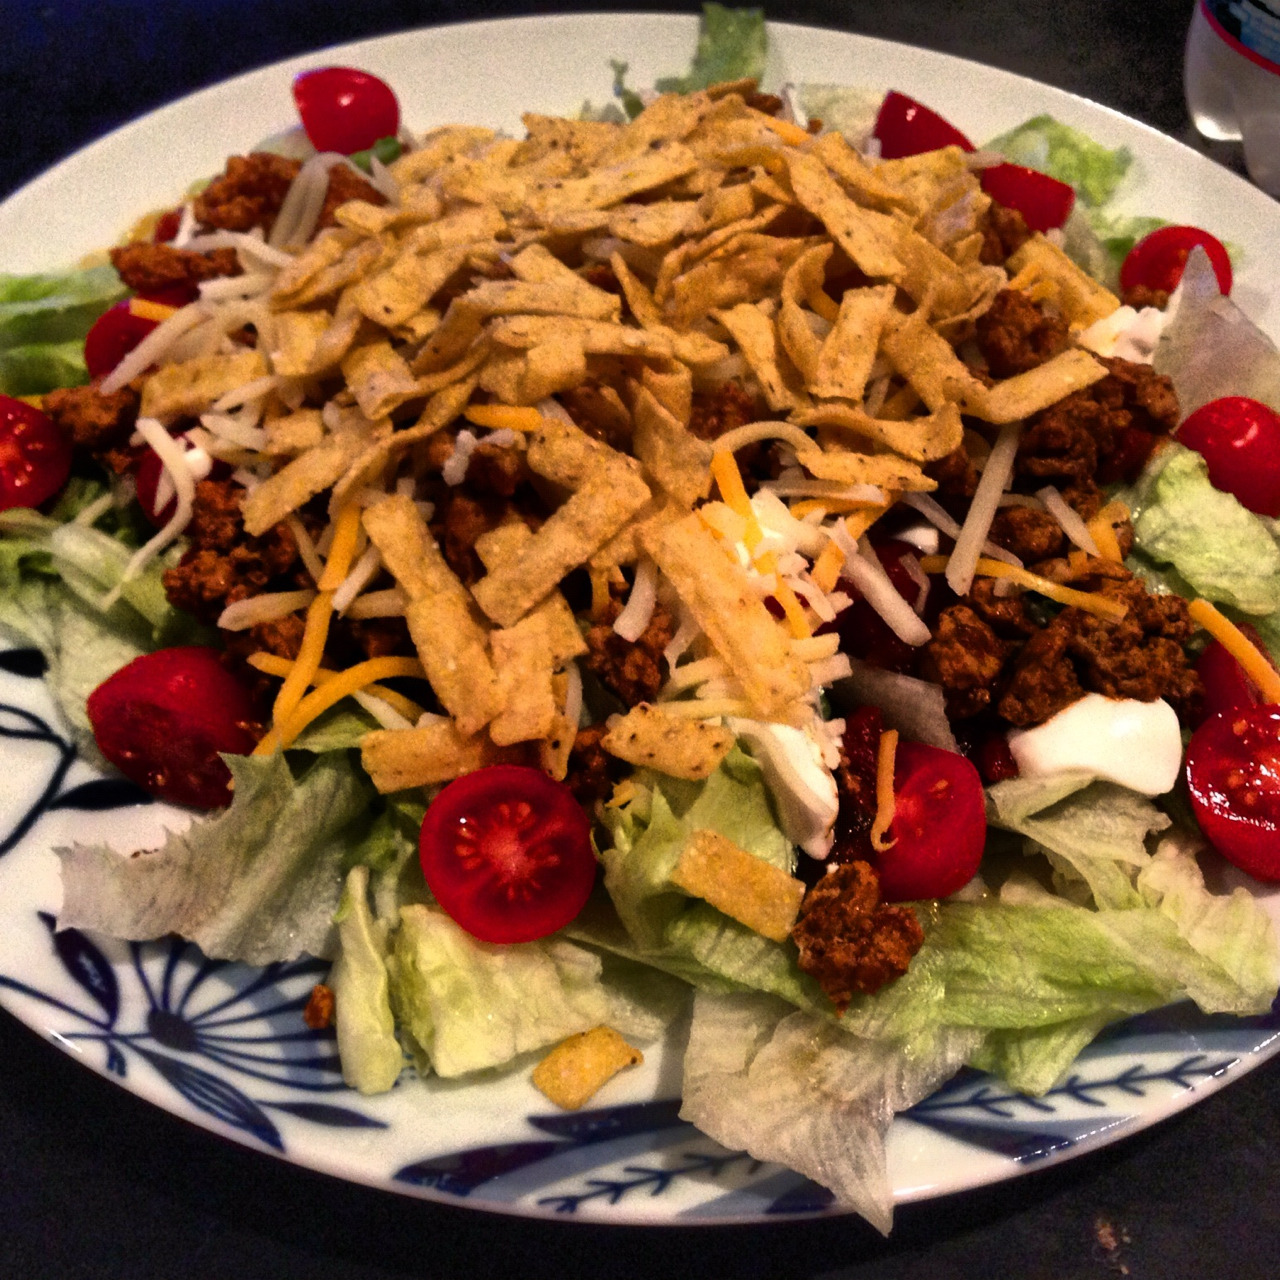 I know I have posted pictures of taco salads before but they are just so darn pretty! I can't get over the colors in this delicious meal. Plus, it's really low in points but super filling.   Lettuce, cherry tomatoes, salsa, reduced fat sour cream, ground turkey with taco seasonings, reduced fat Mexican blend cheese, tortilla strips. 11PP. For real! It was spicy and fresh and so good!